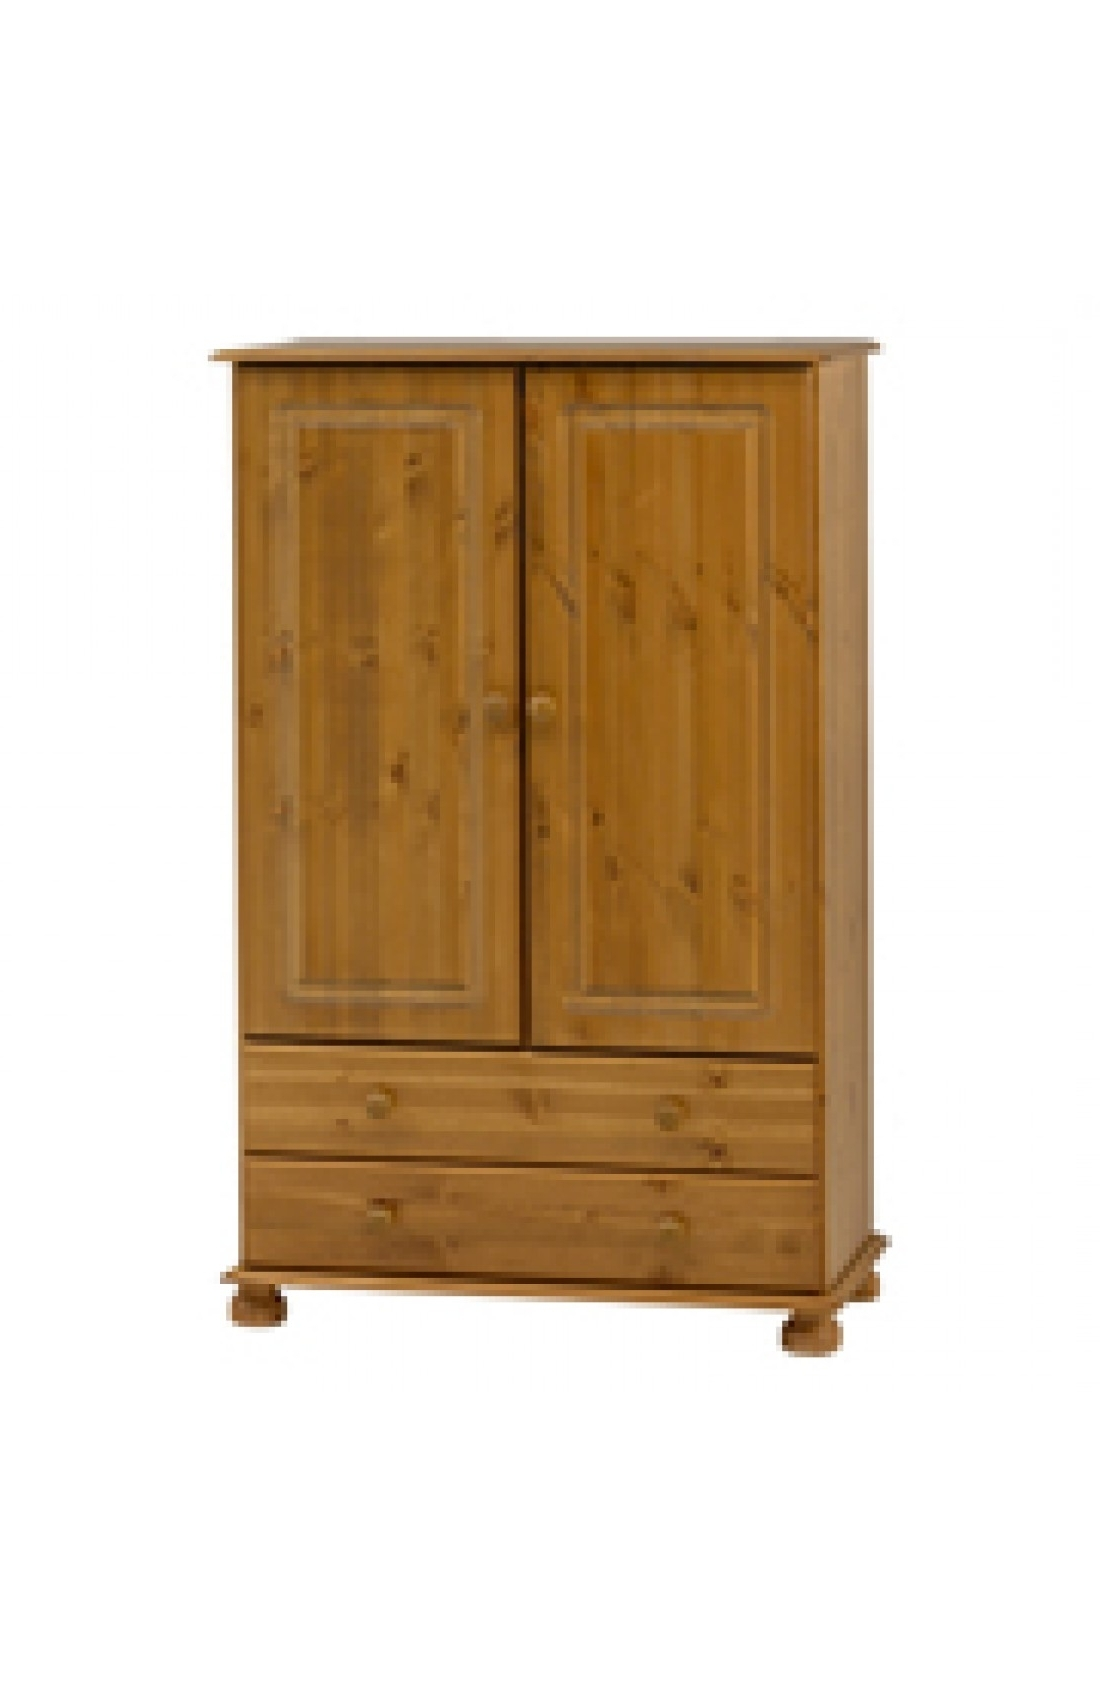 Popular Richmond 2 Door 2 Drawer Short Low Tallboy Wardrobe – Pine Within Small Tallboy Wardrobes (View 10 of 15)